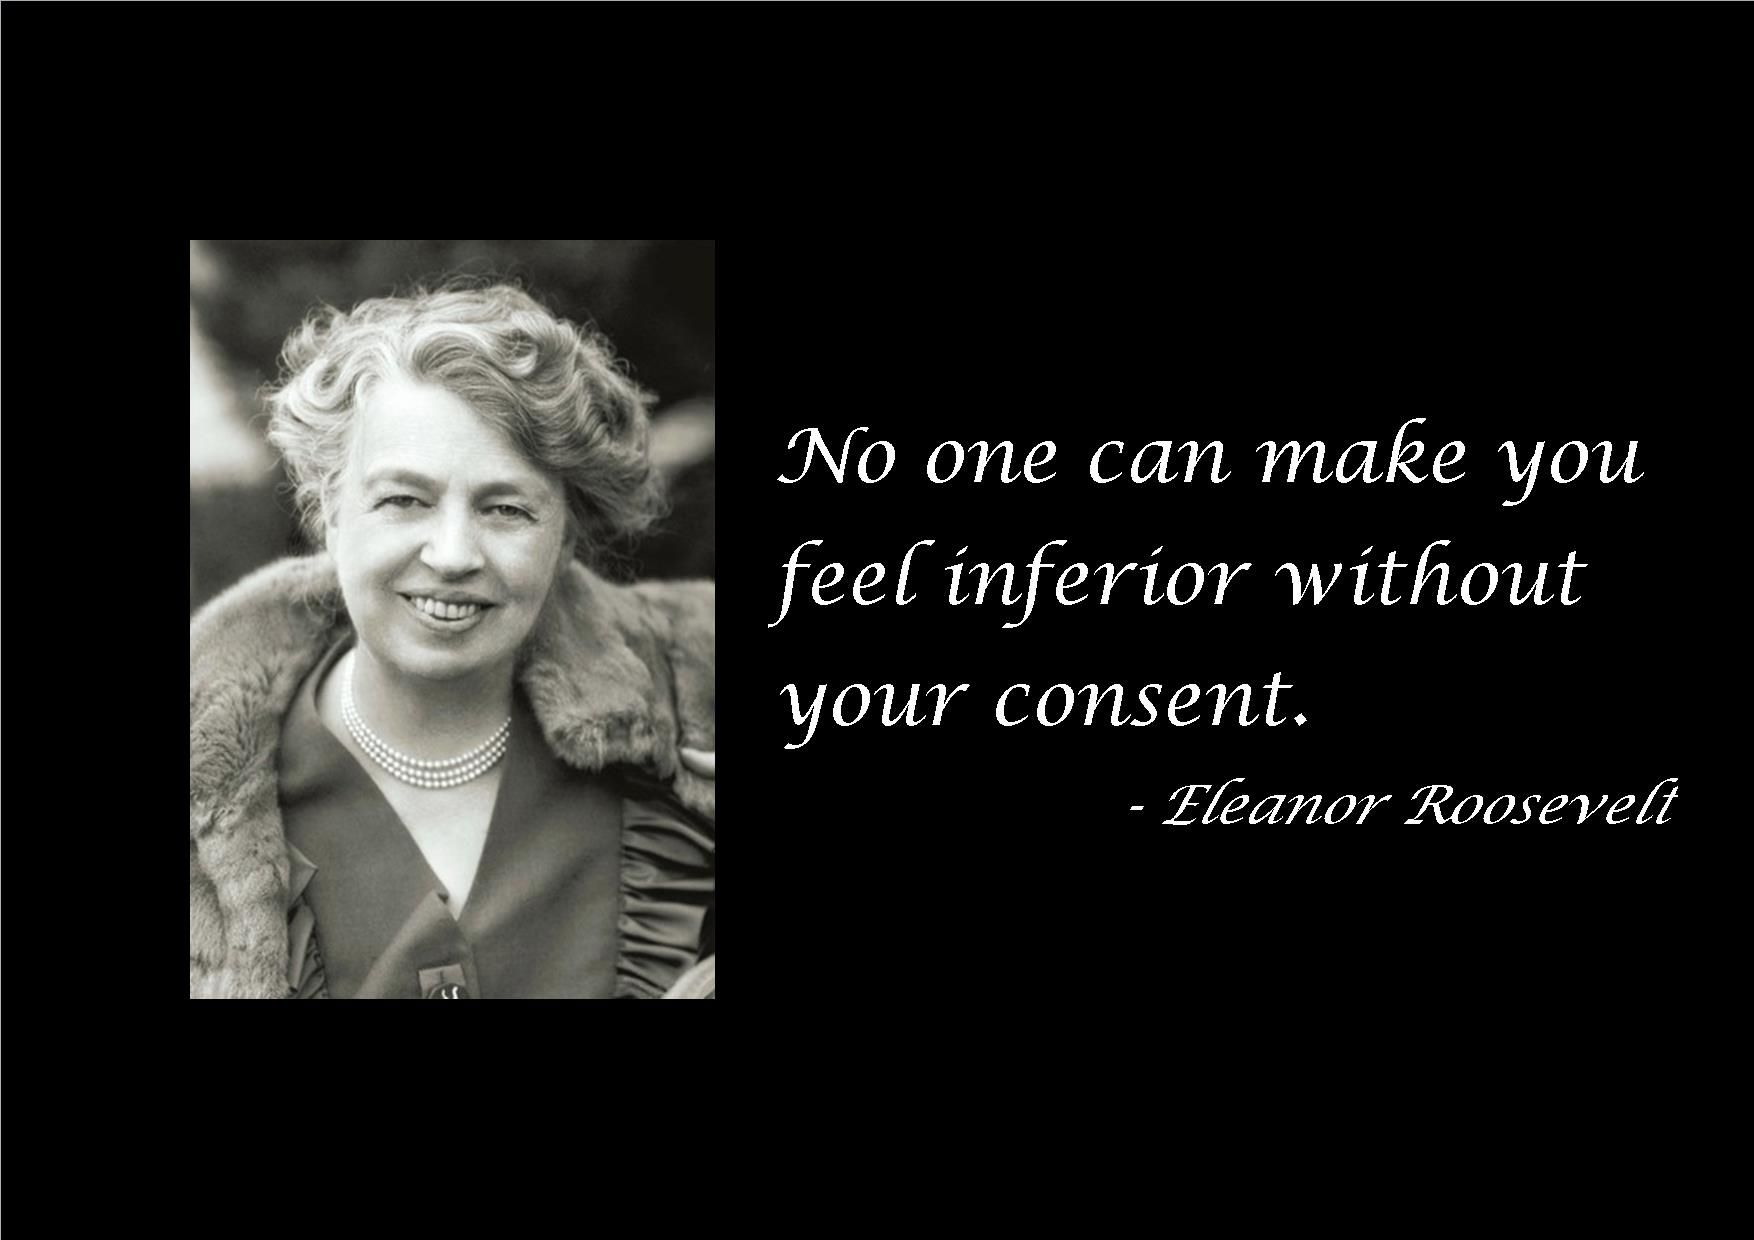 Quotes Eleanor Roosevelt Eleanor Roosevelt Was Born Anna Eleanor Roosevelt On October 11